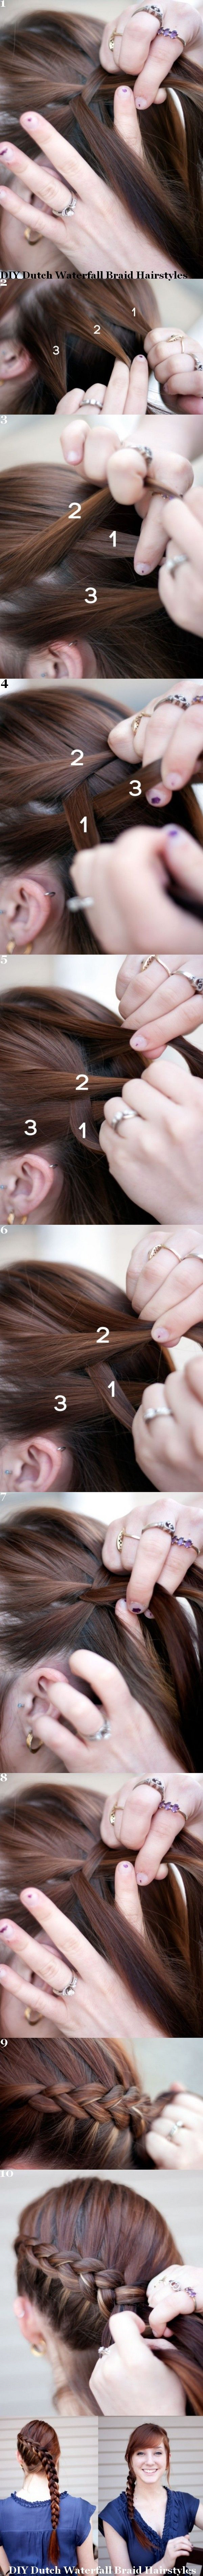 DIY Dutch Waterfall Braid Hairstyles.